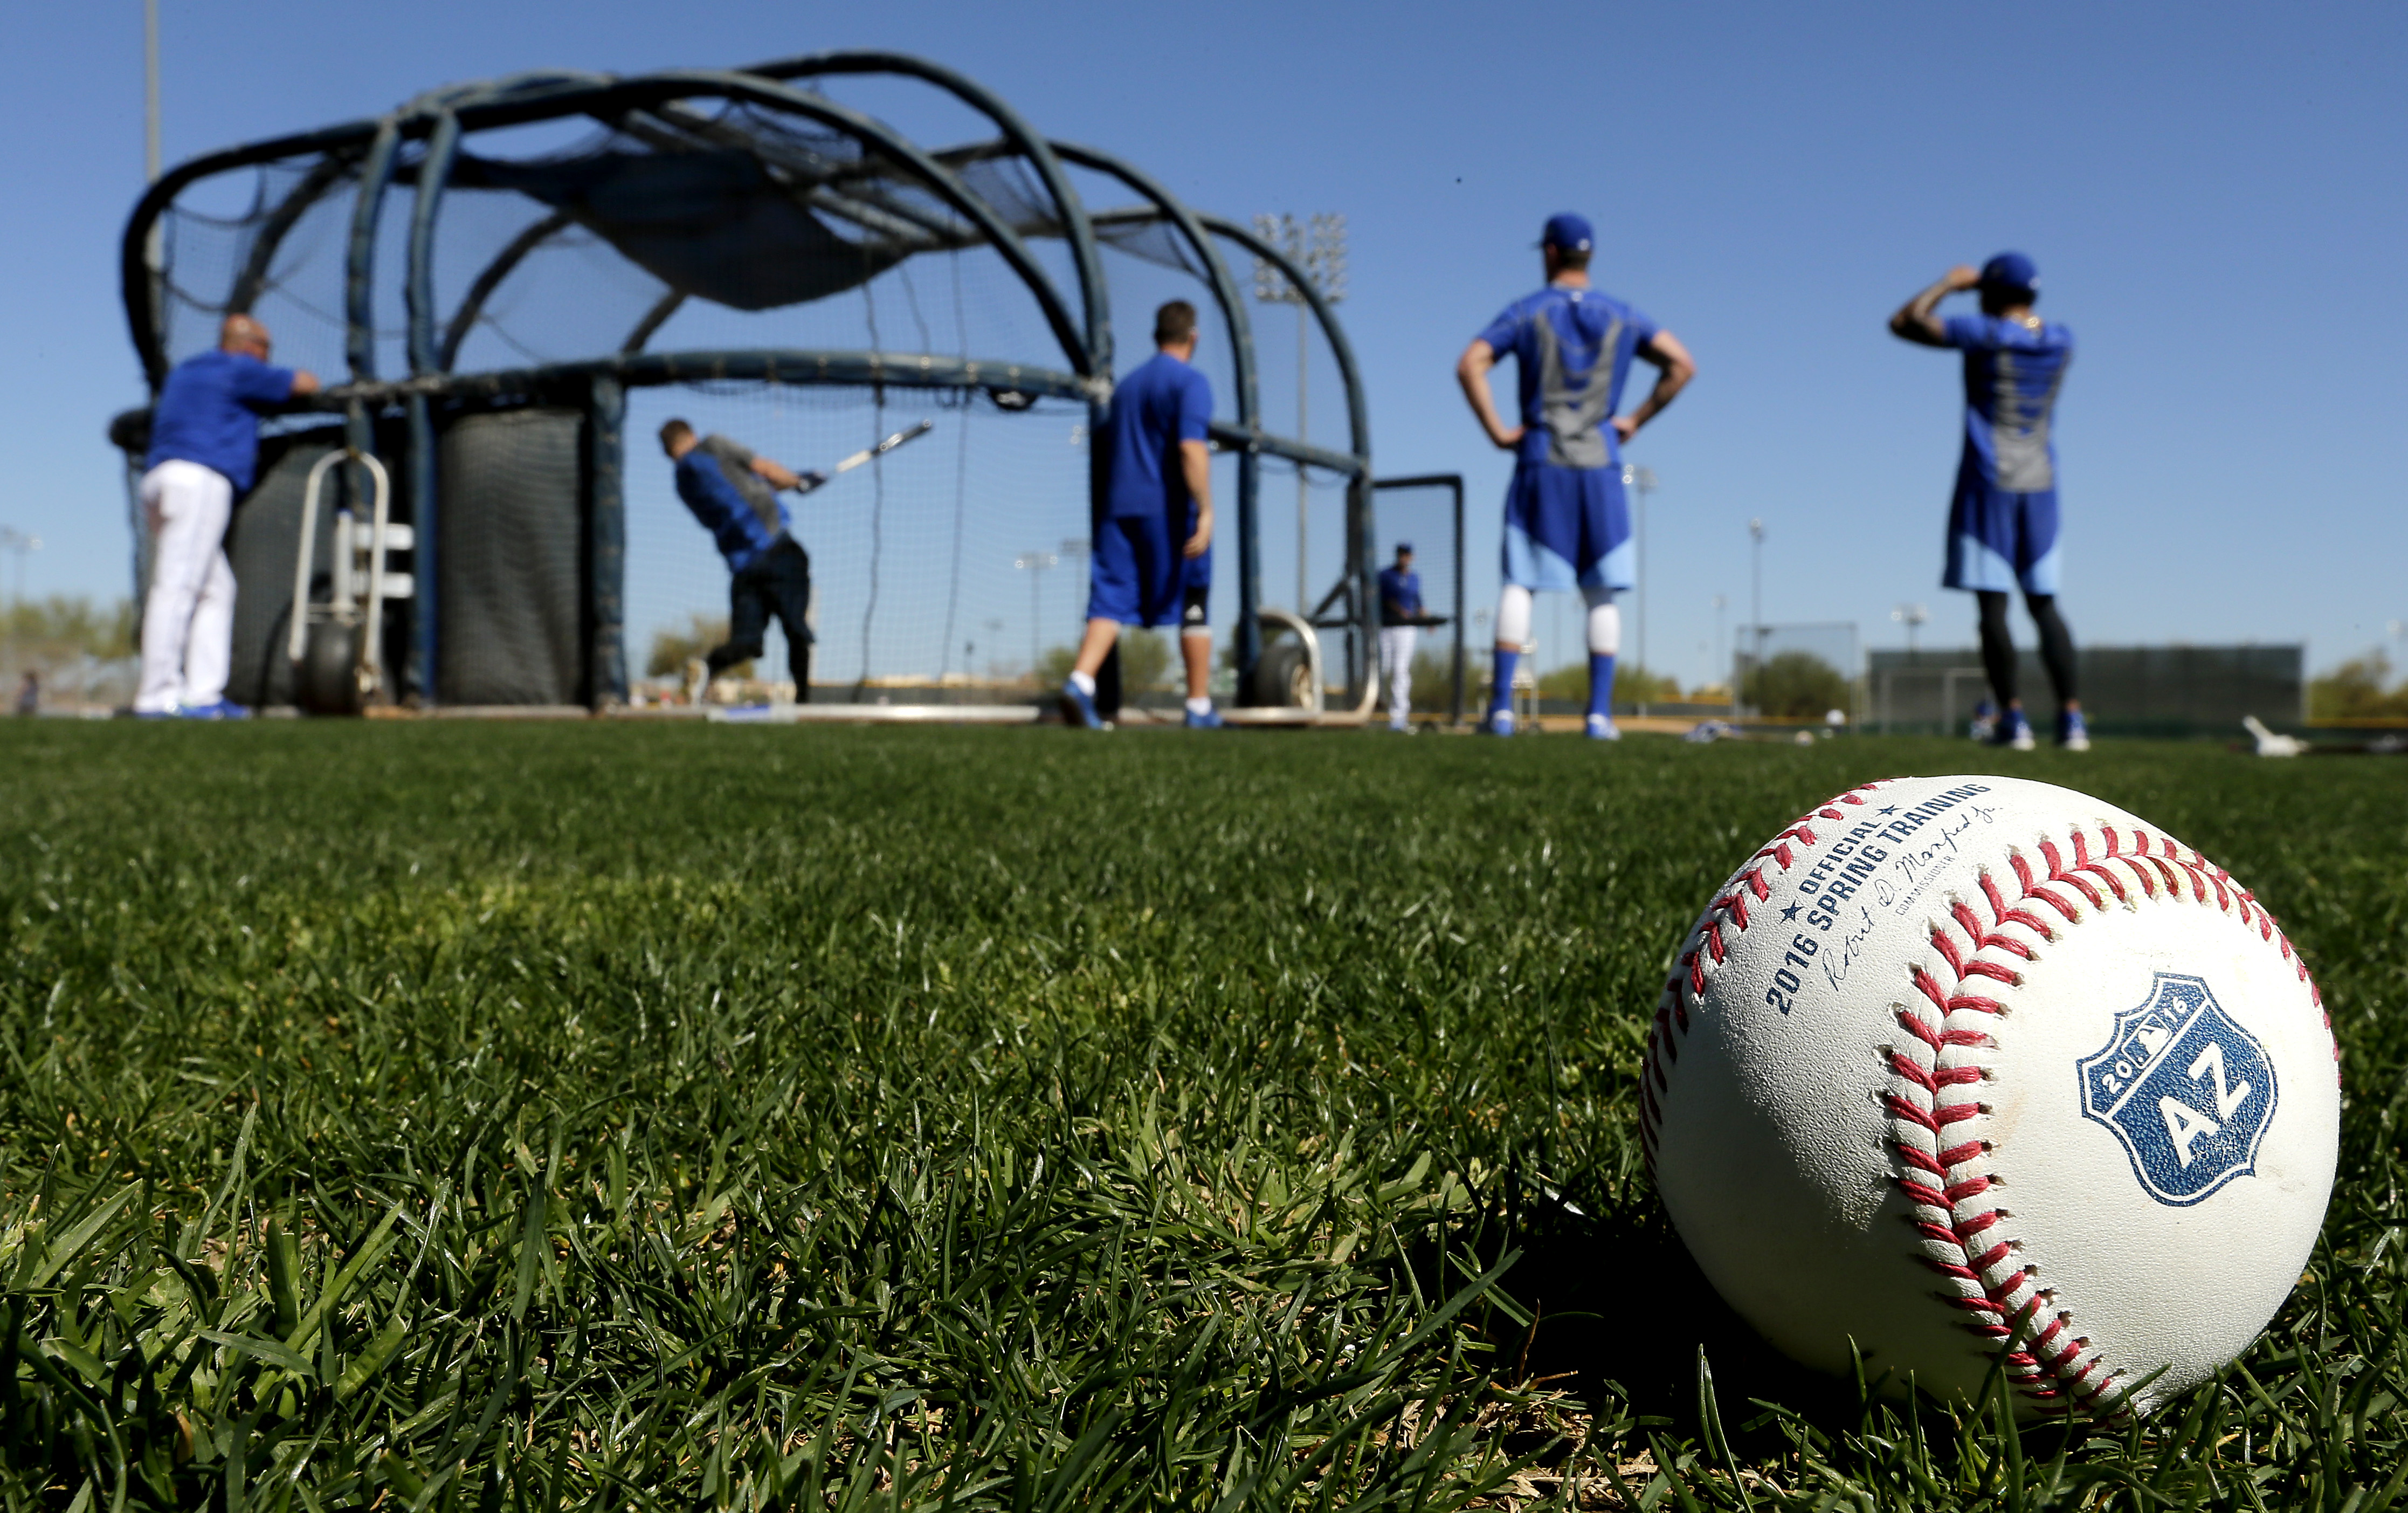 Players for the Kansas City Royals have batting practice during spring training baseball practice Sunday, Feb. 21, 2016, in Surprise, Ariz. (AP Photo/Charlie Riedel)